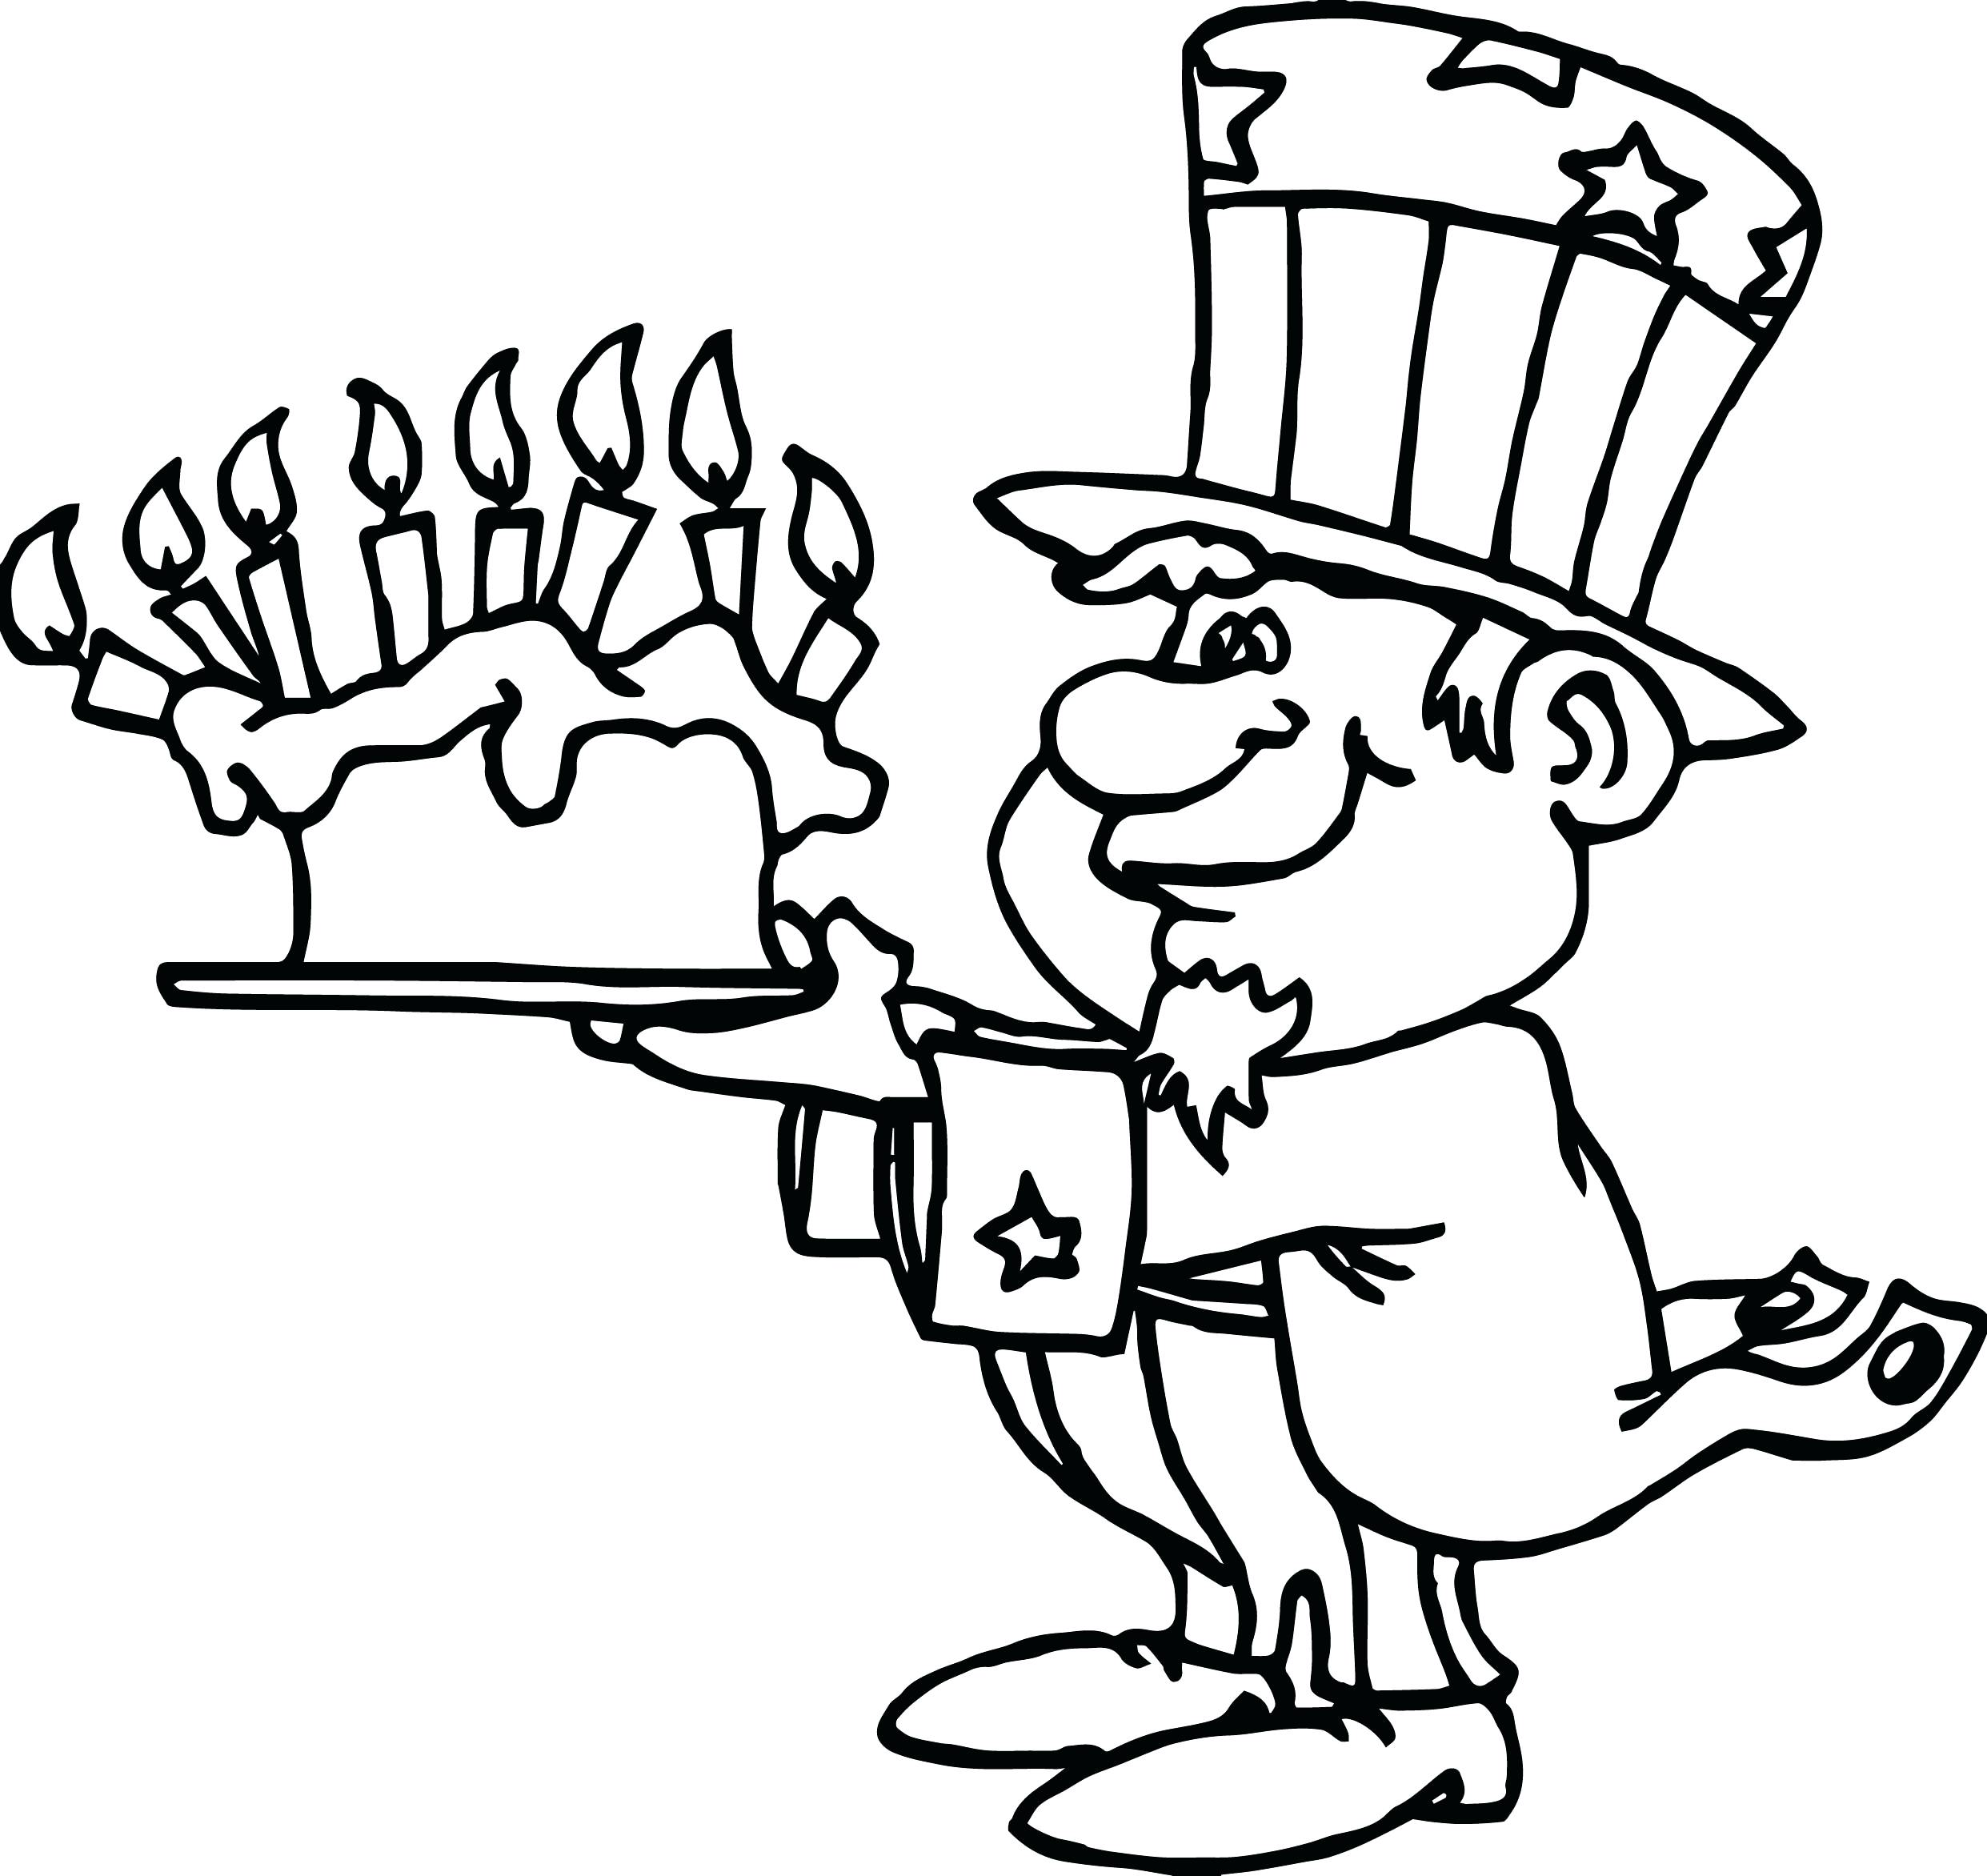 2483x2344 Fresh Coloring Uncle Sam Coloring Page Awesome Cool Gallery Ideas